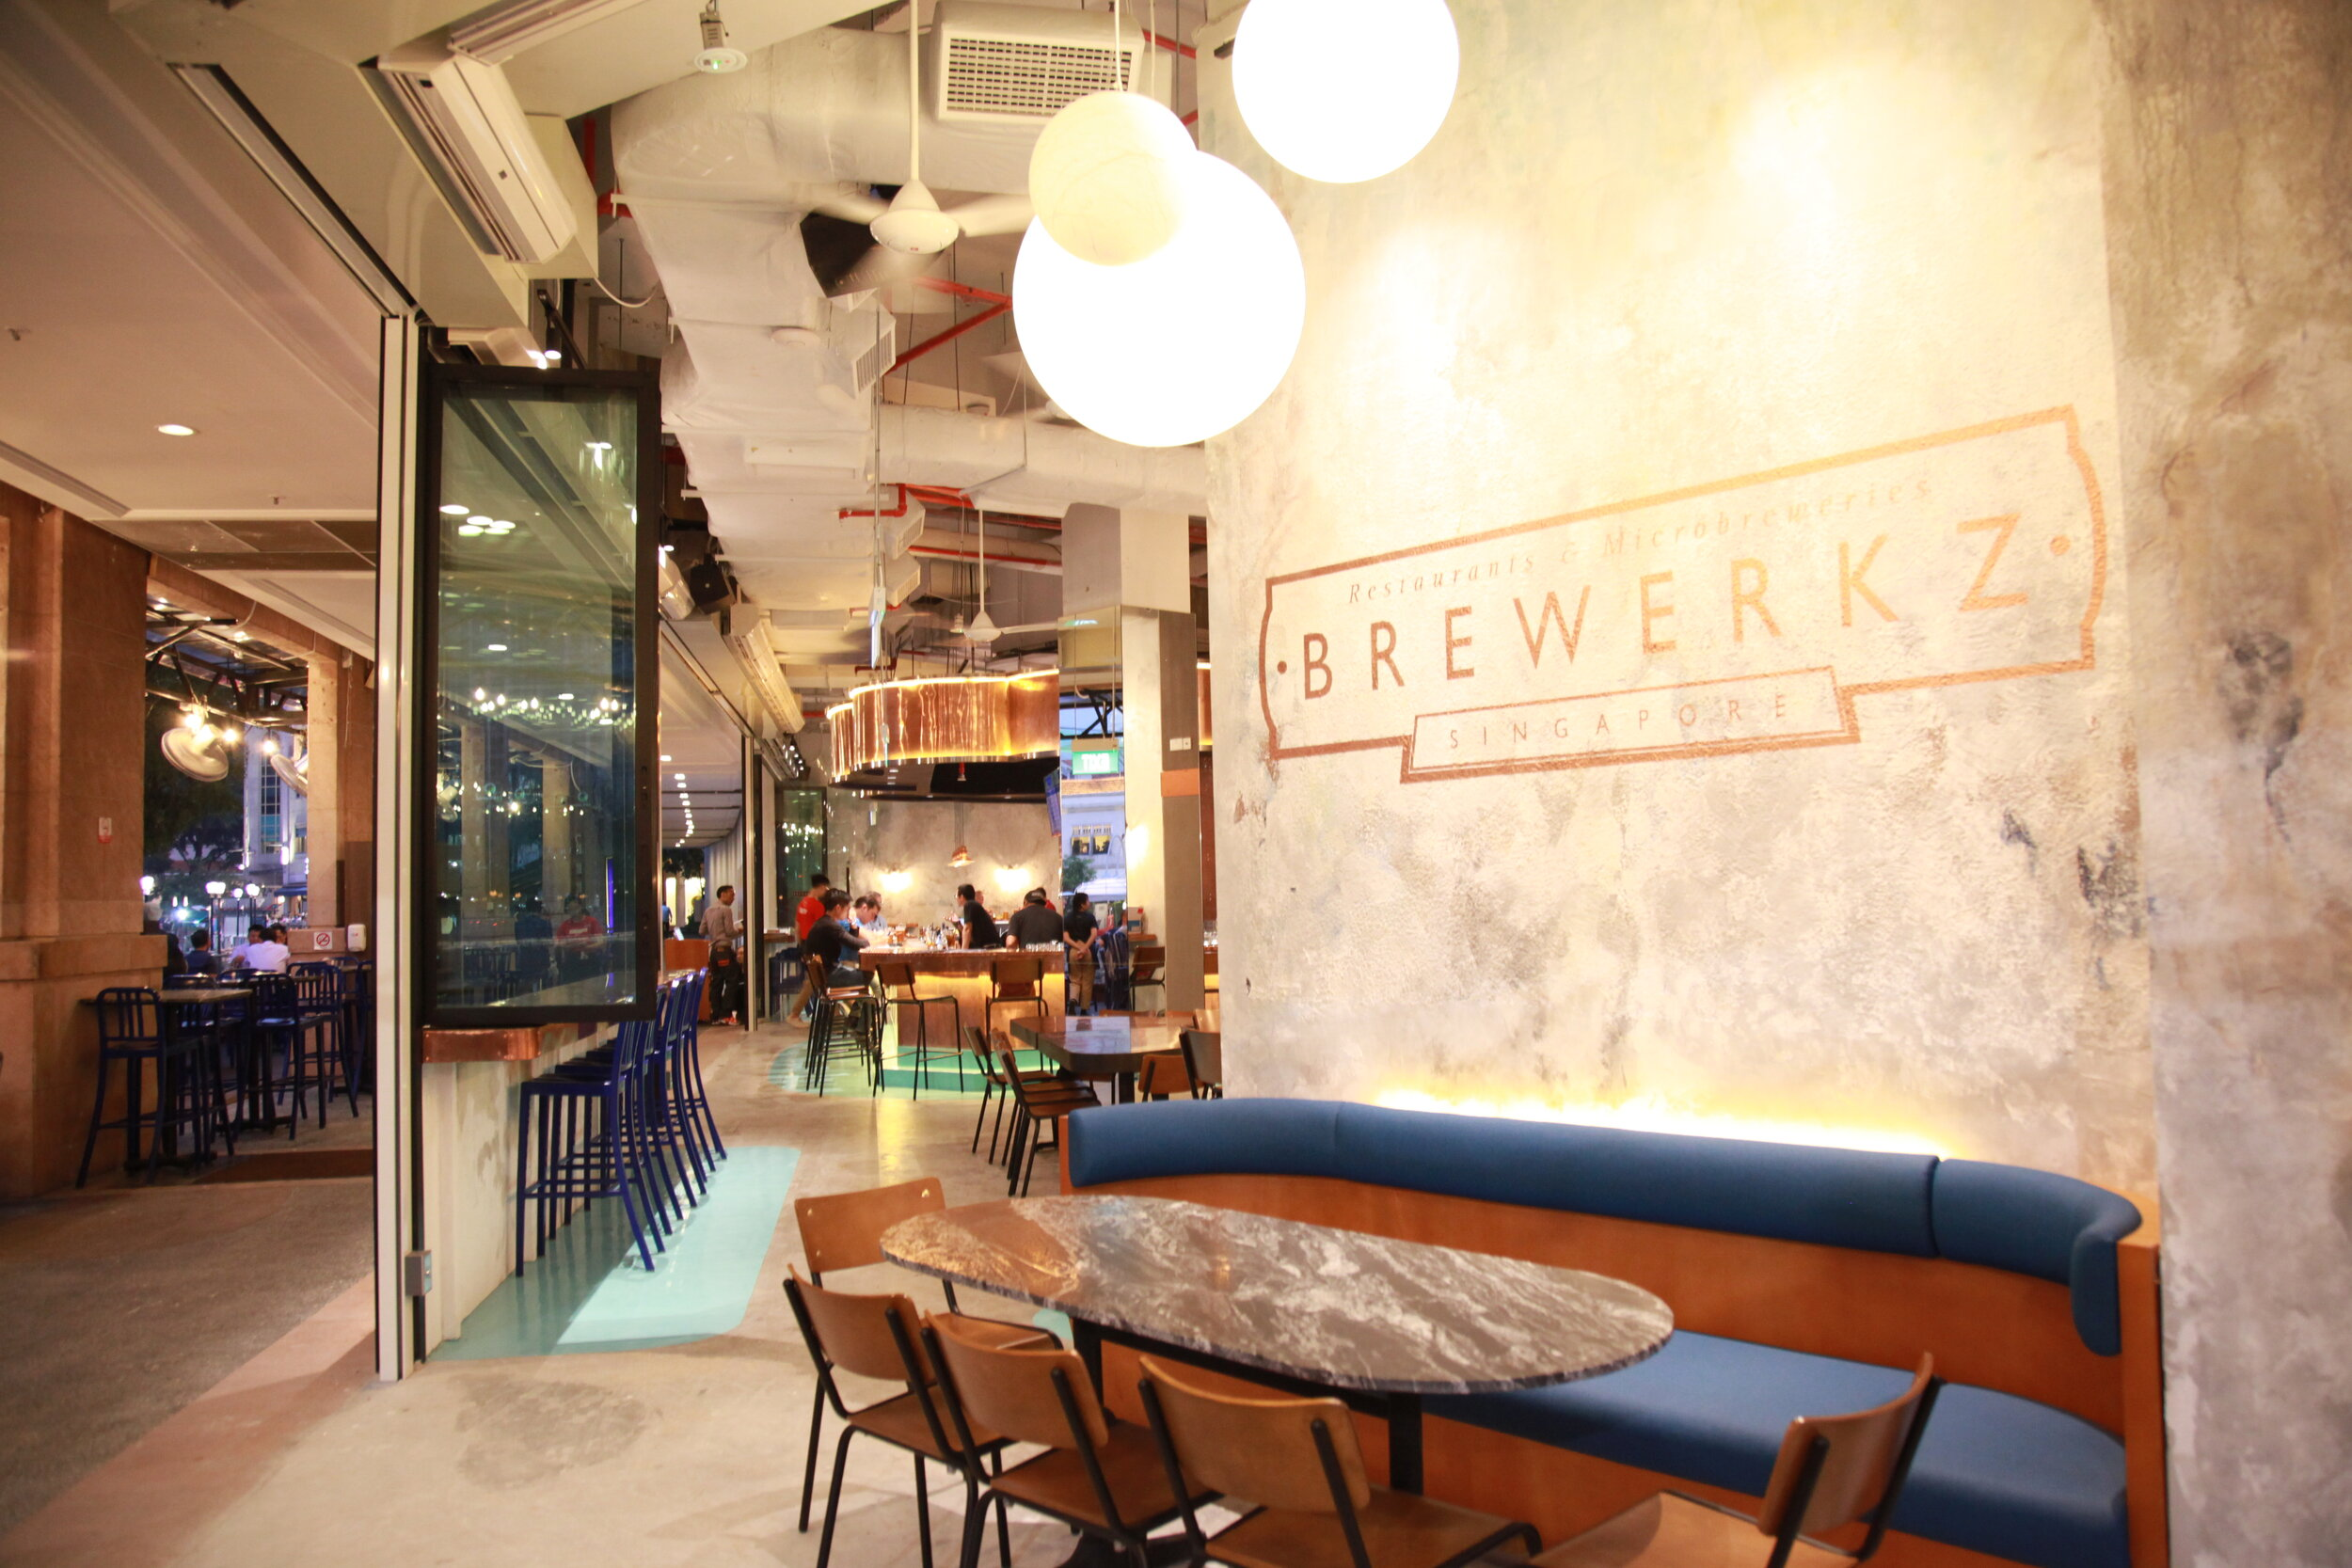 Brewerkz Riverside Point - A local mural artist creates an aged lived-in effect reminiscent of an inviting hall.JPG